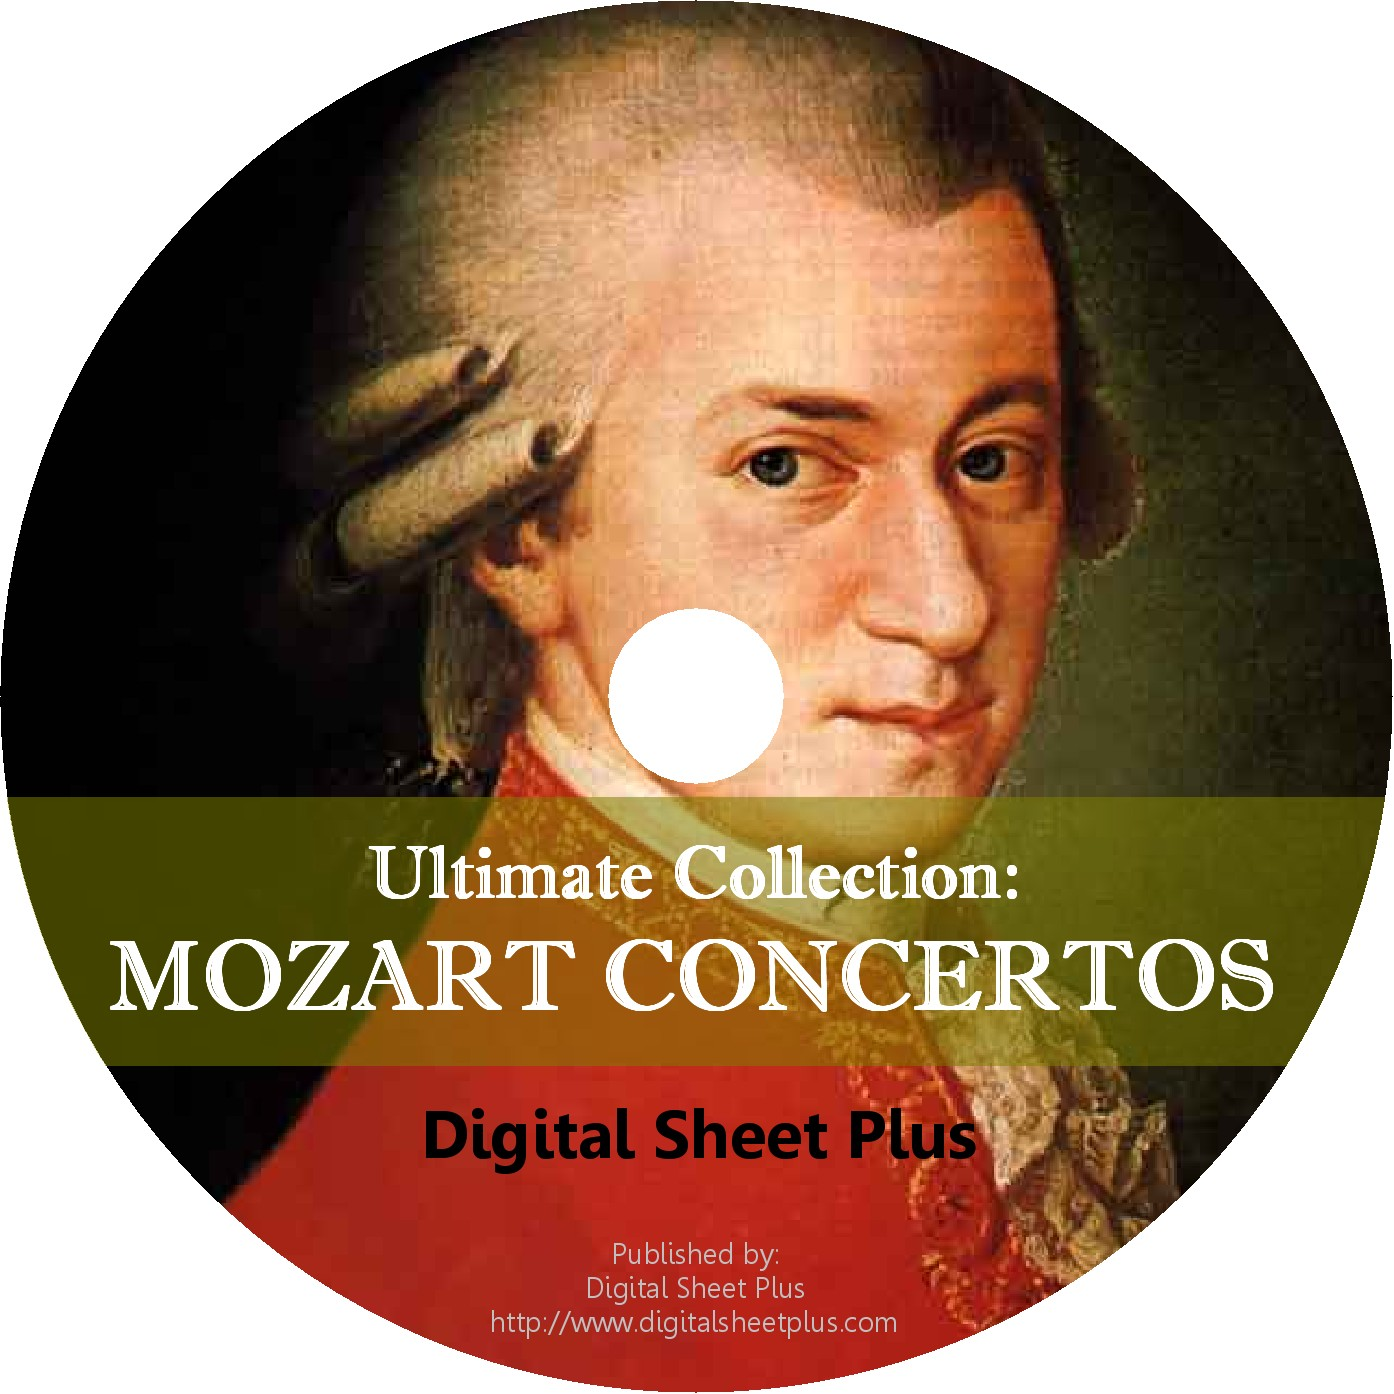 mozart_concertos_cd_cover.jpg